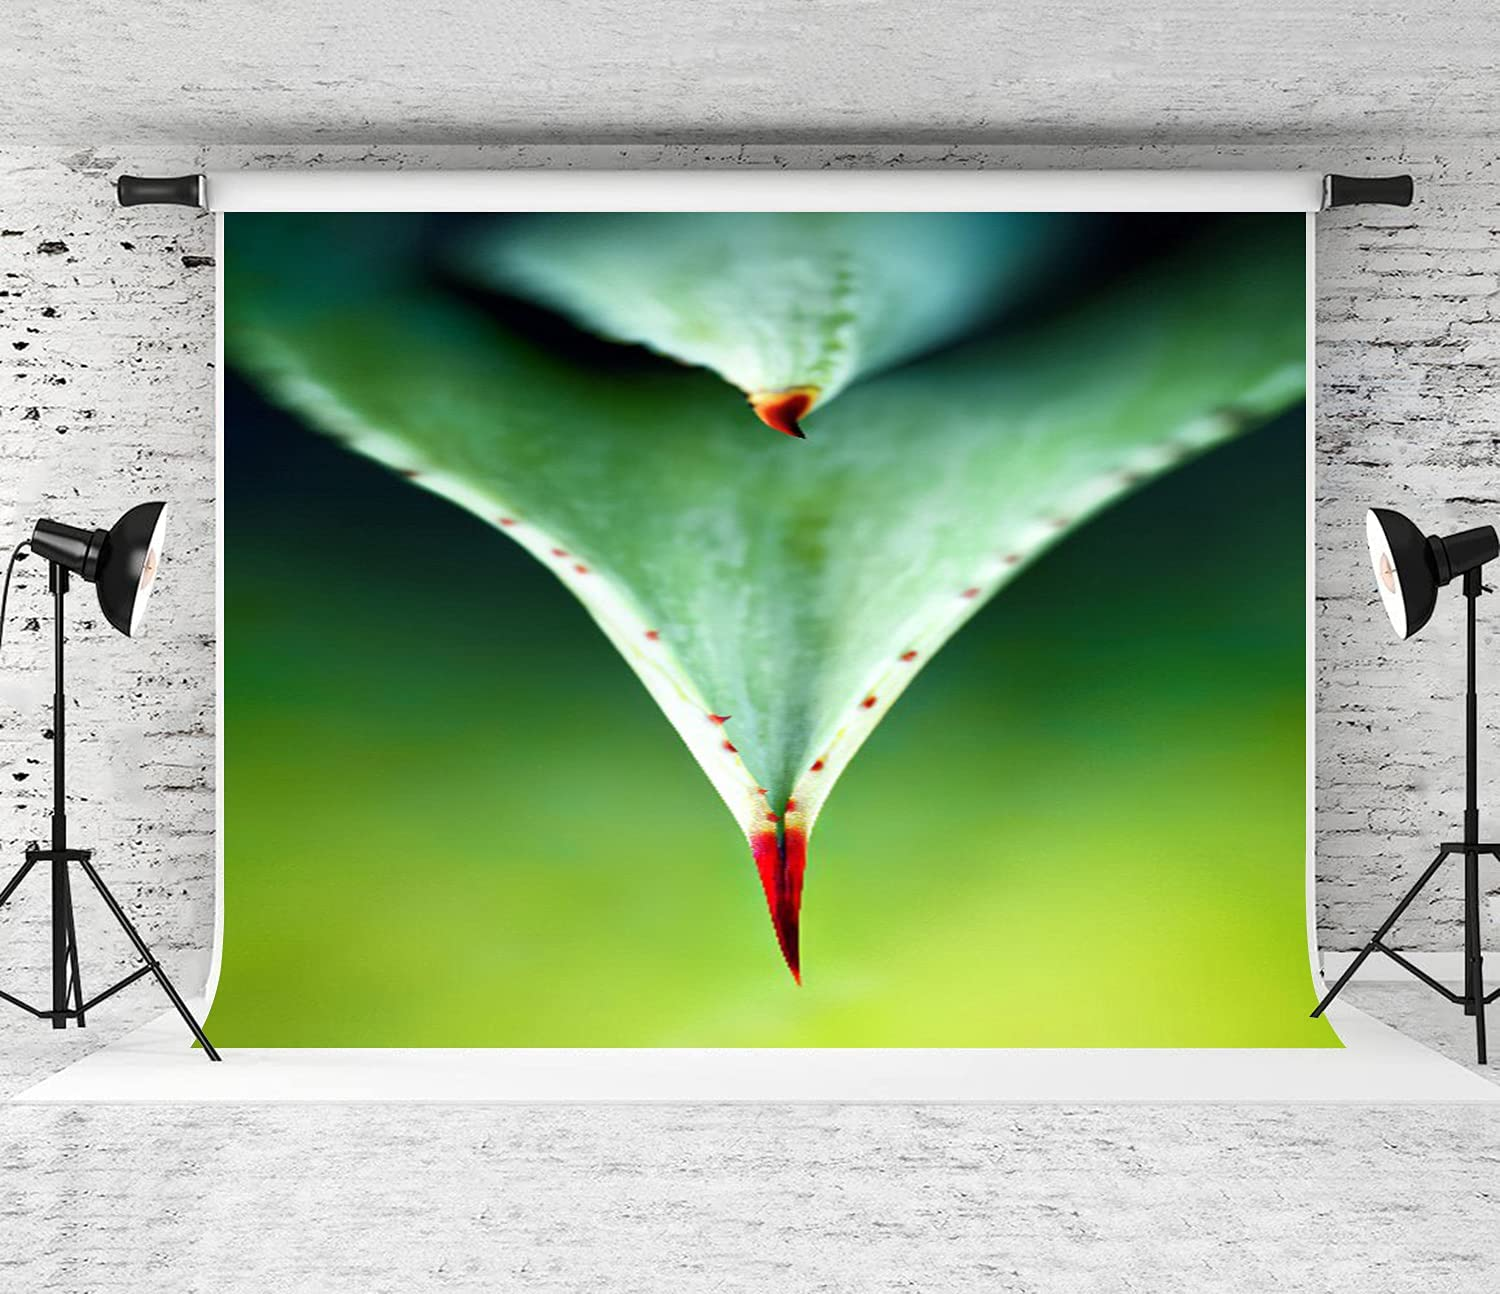 ZOANEN Fixed price for sale Photography Background Aloe Leaf Thorn Gree Hard up Spring new work Close